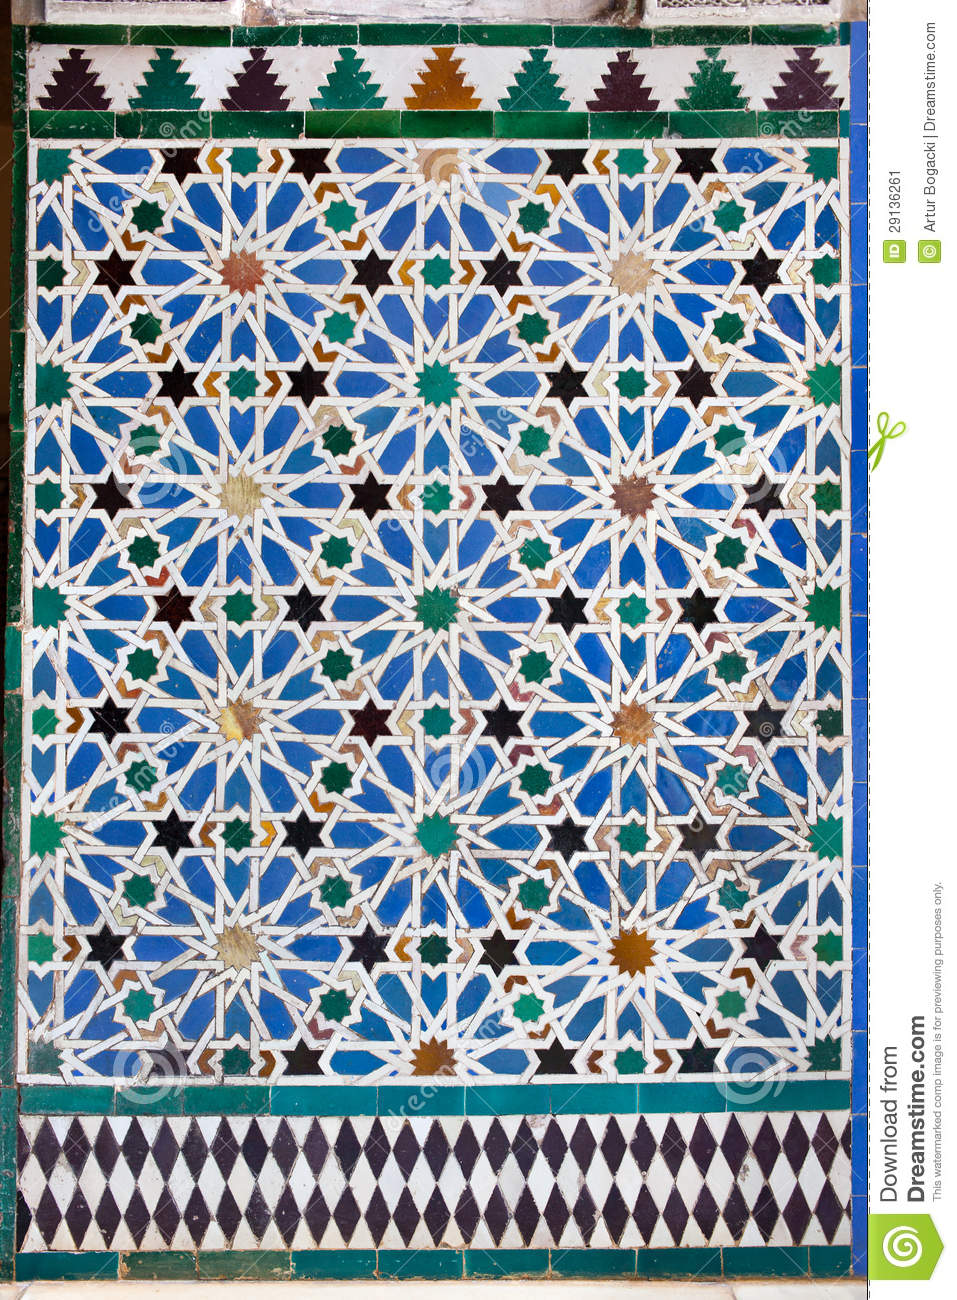 Azulejos Tiled Wall In Mudejar Style Stock Image Image